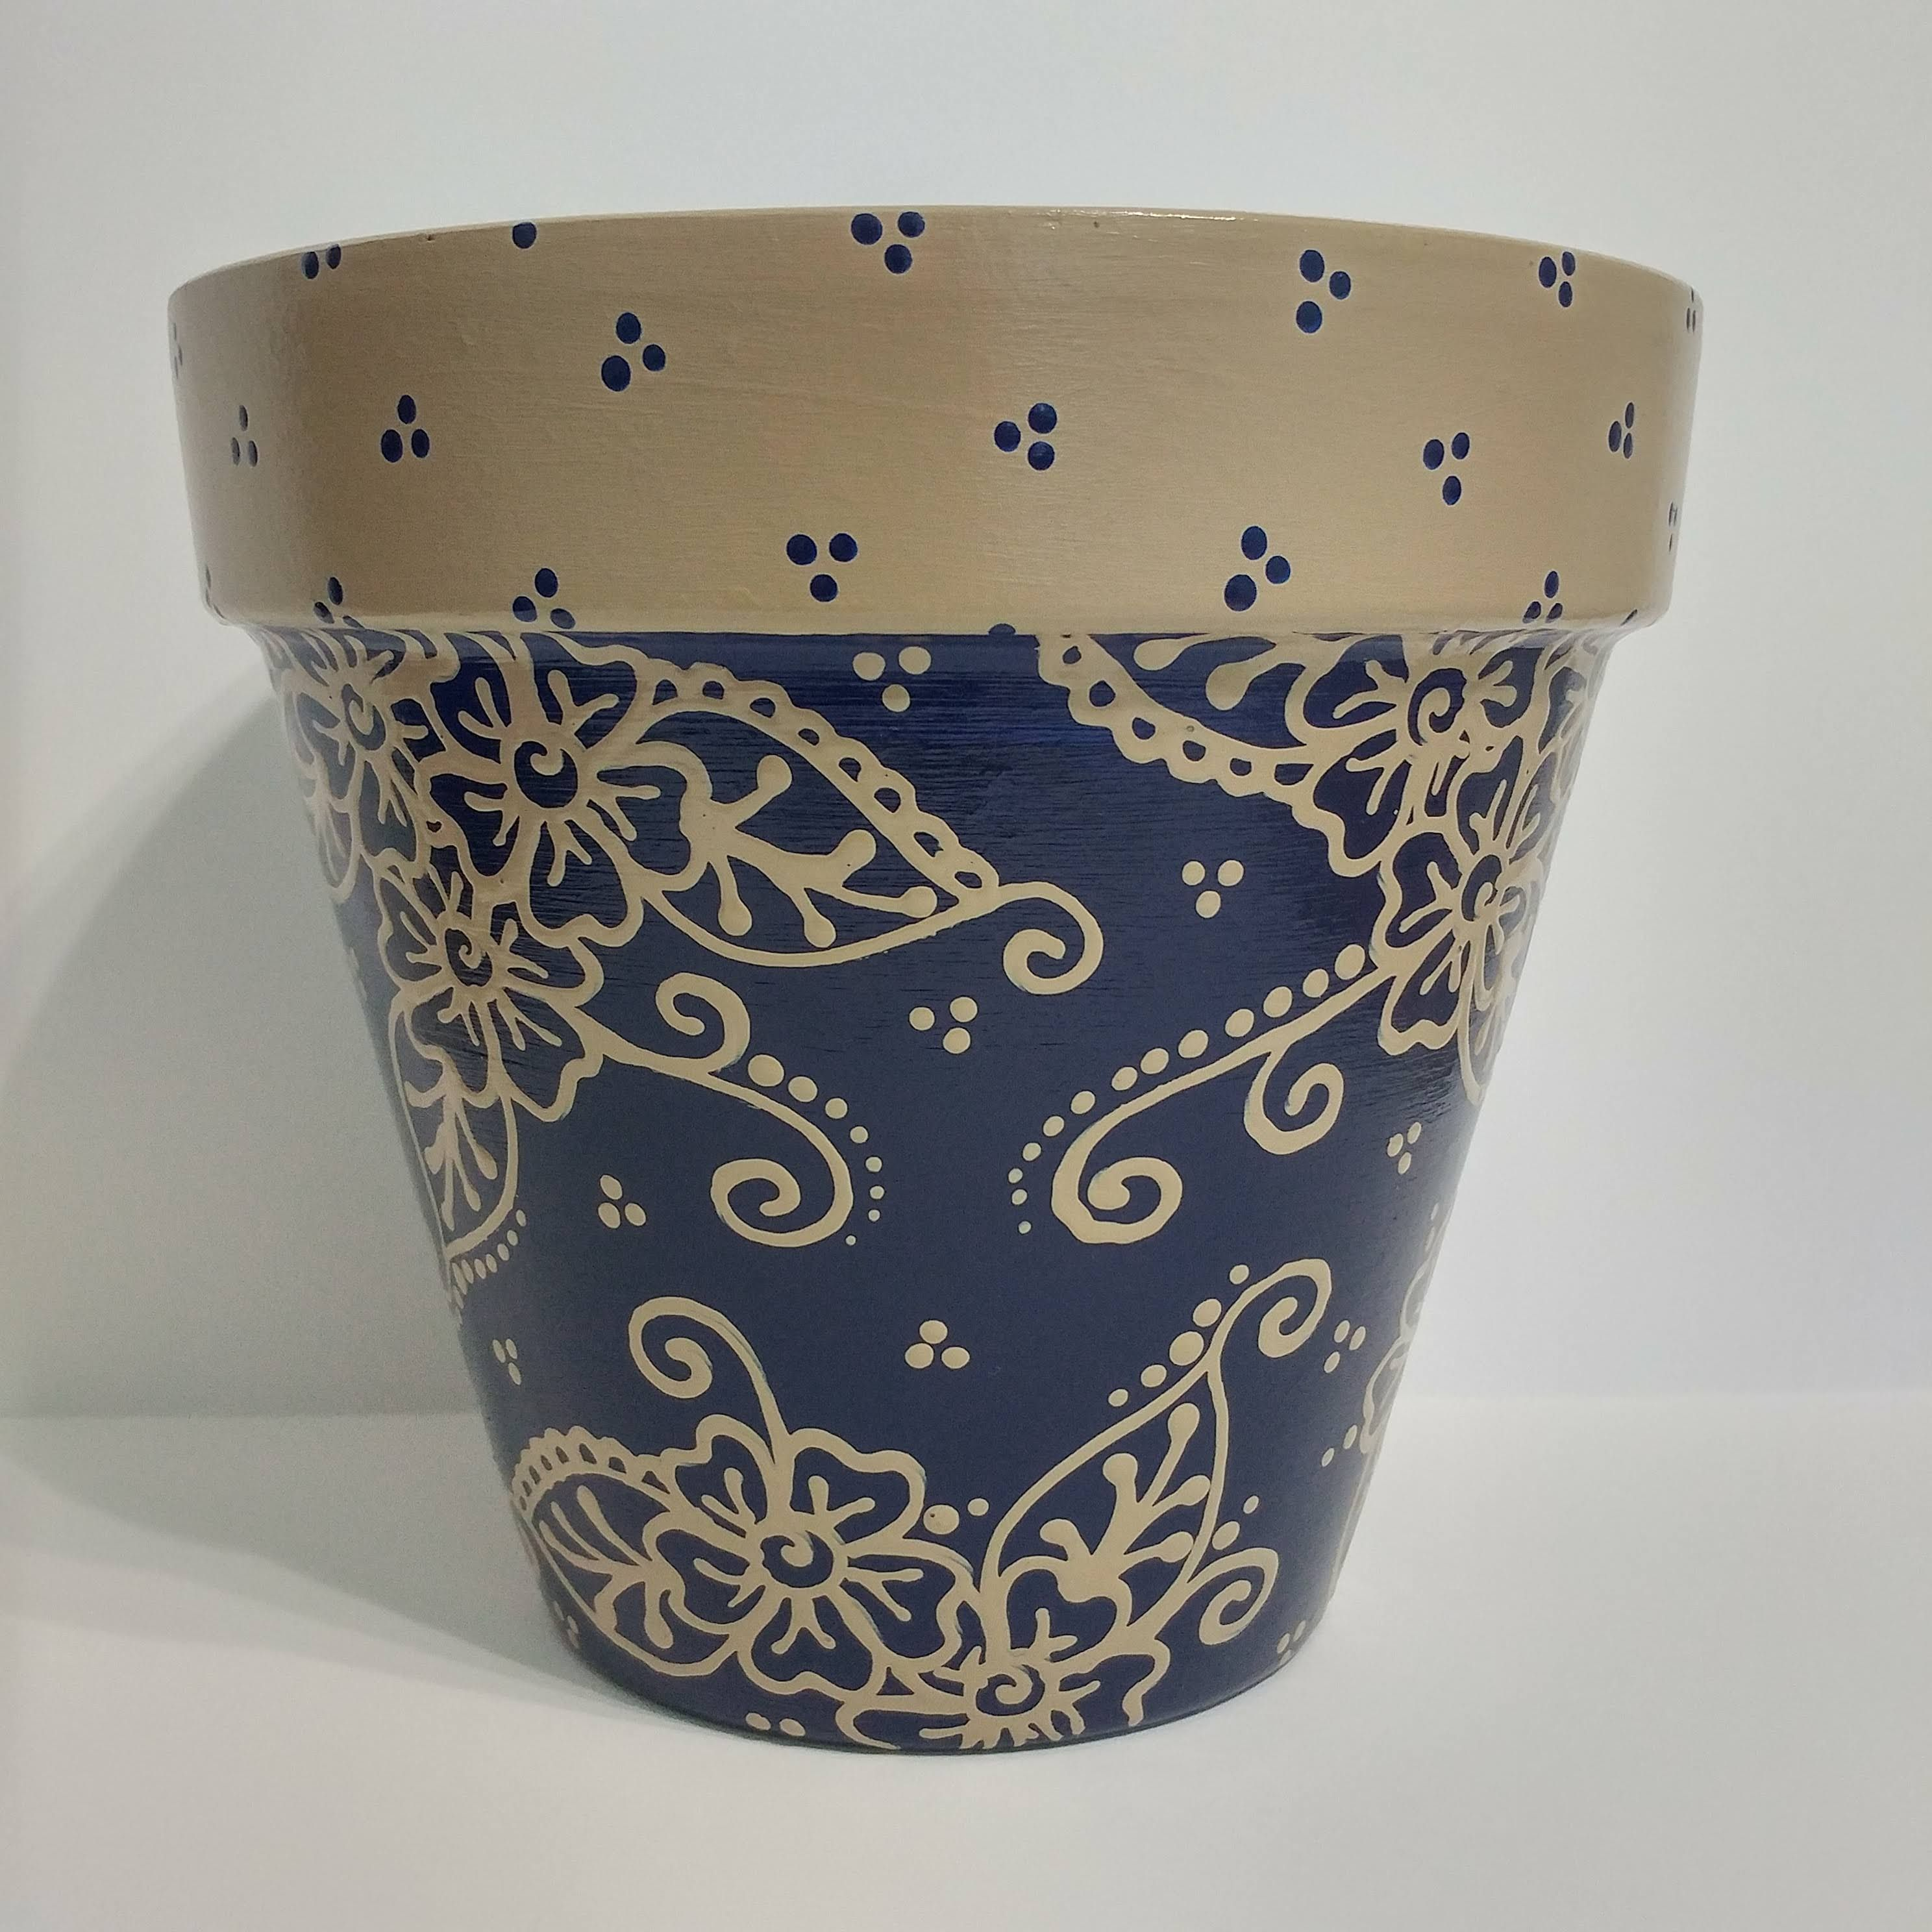 Large 8 Terra Cotta Flower Pot Hand Painted Navy Blue With Free Hand Beige Flowers And Coordinating Dots Terracotta Flower Pots Blue Planter Navy Blue Planter